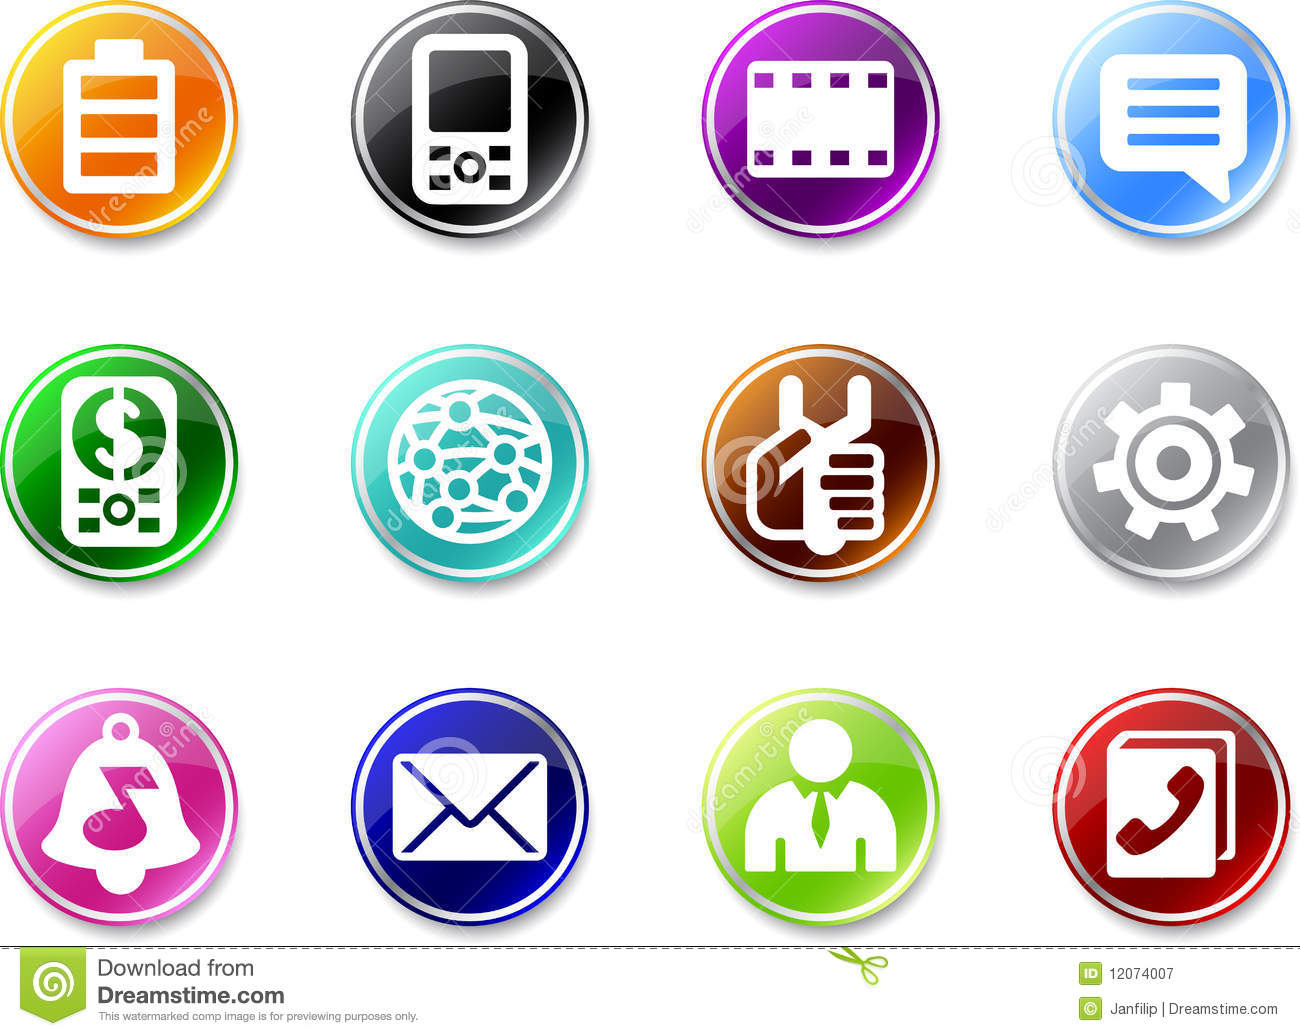 10 Cell Phone Icon Small Images